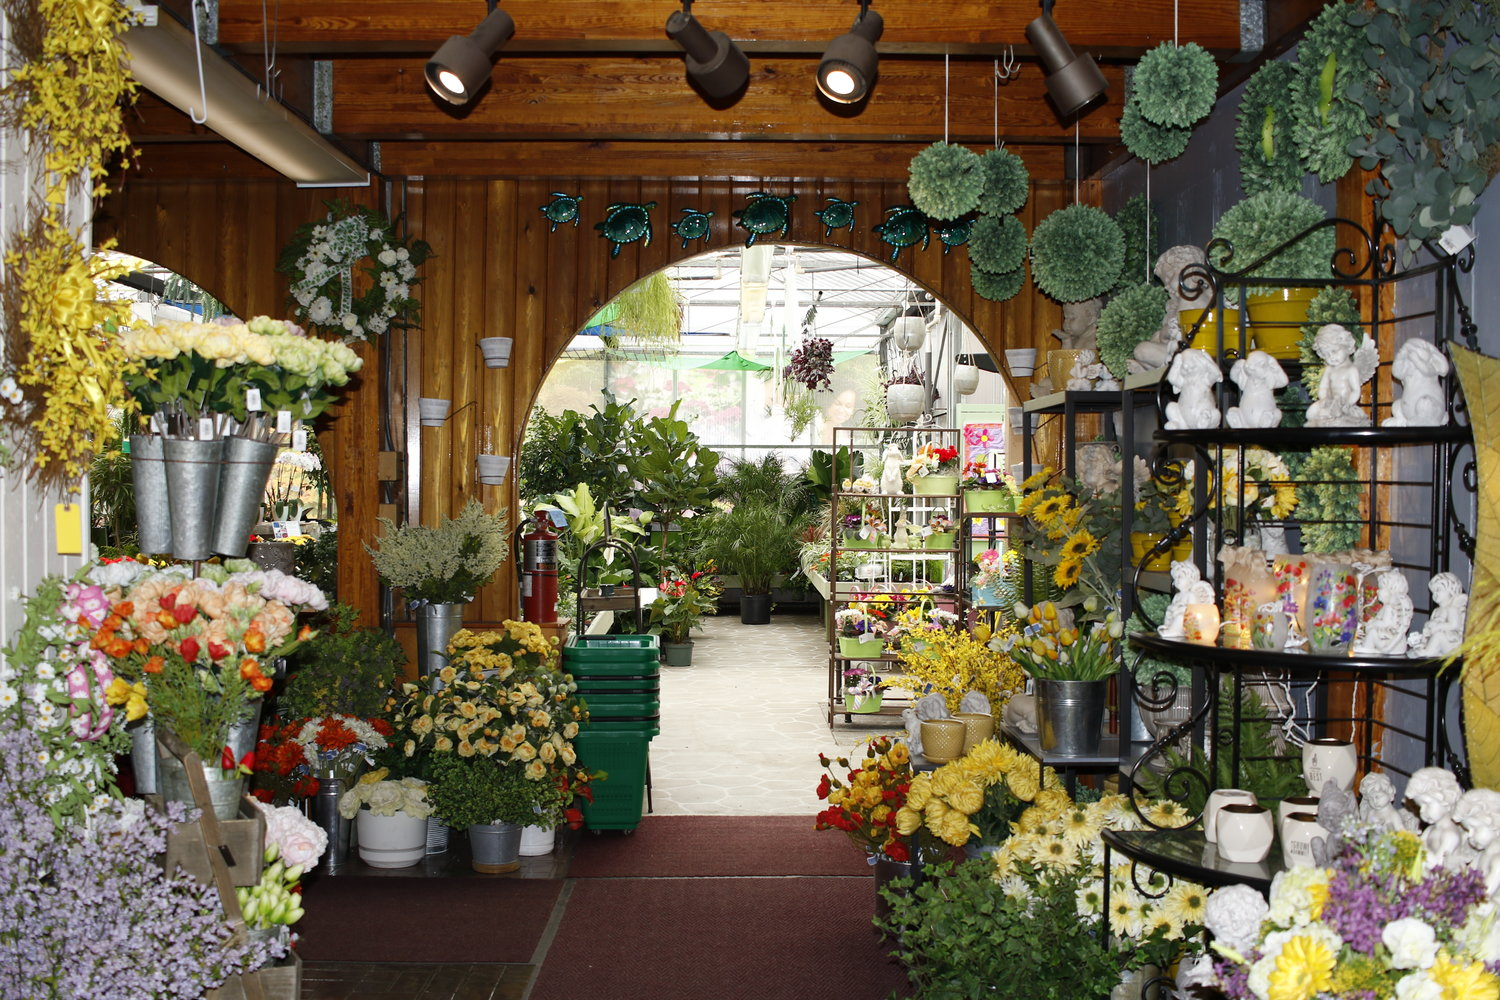 There are a wide selection of flowers and trees in the nursery's garden center.